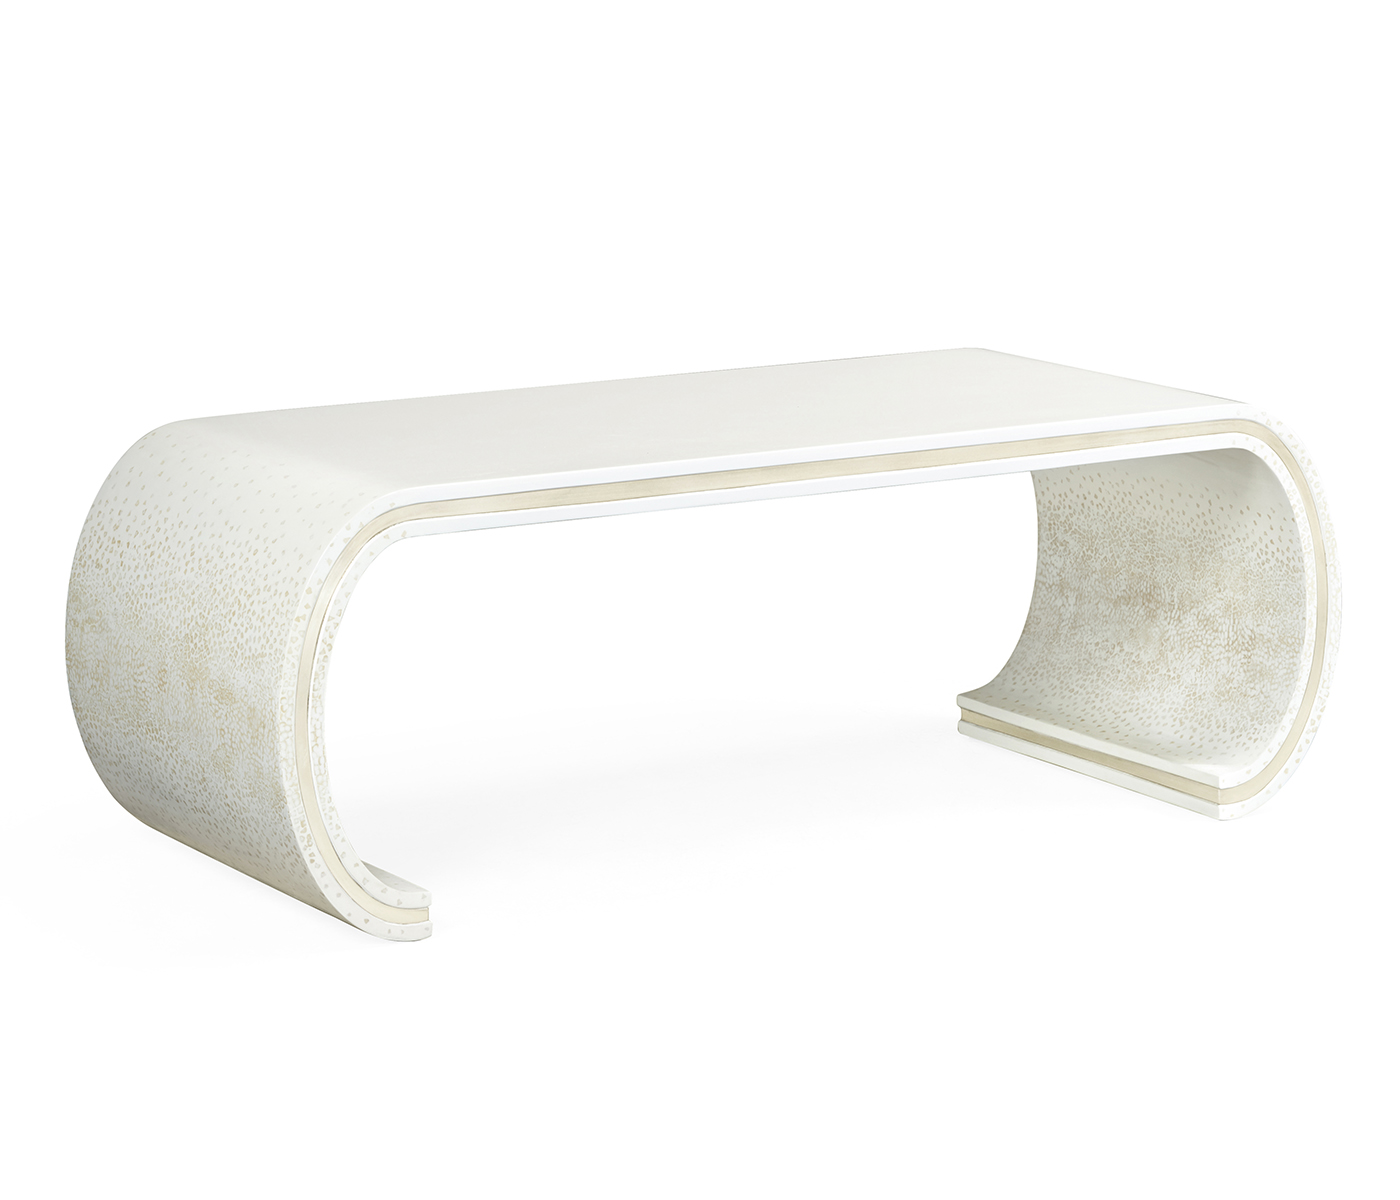 Curved Edge Glass Coffee Table: Curved Edges Ivory Eggshell Coffee Table